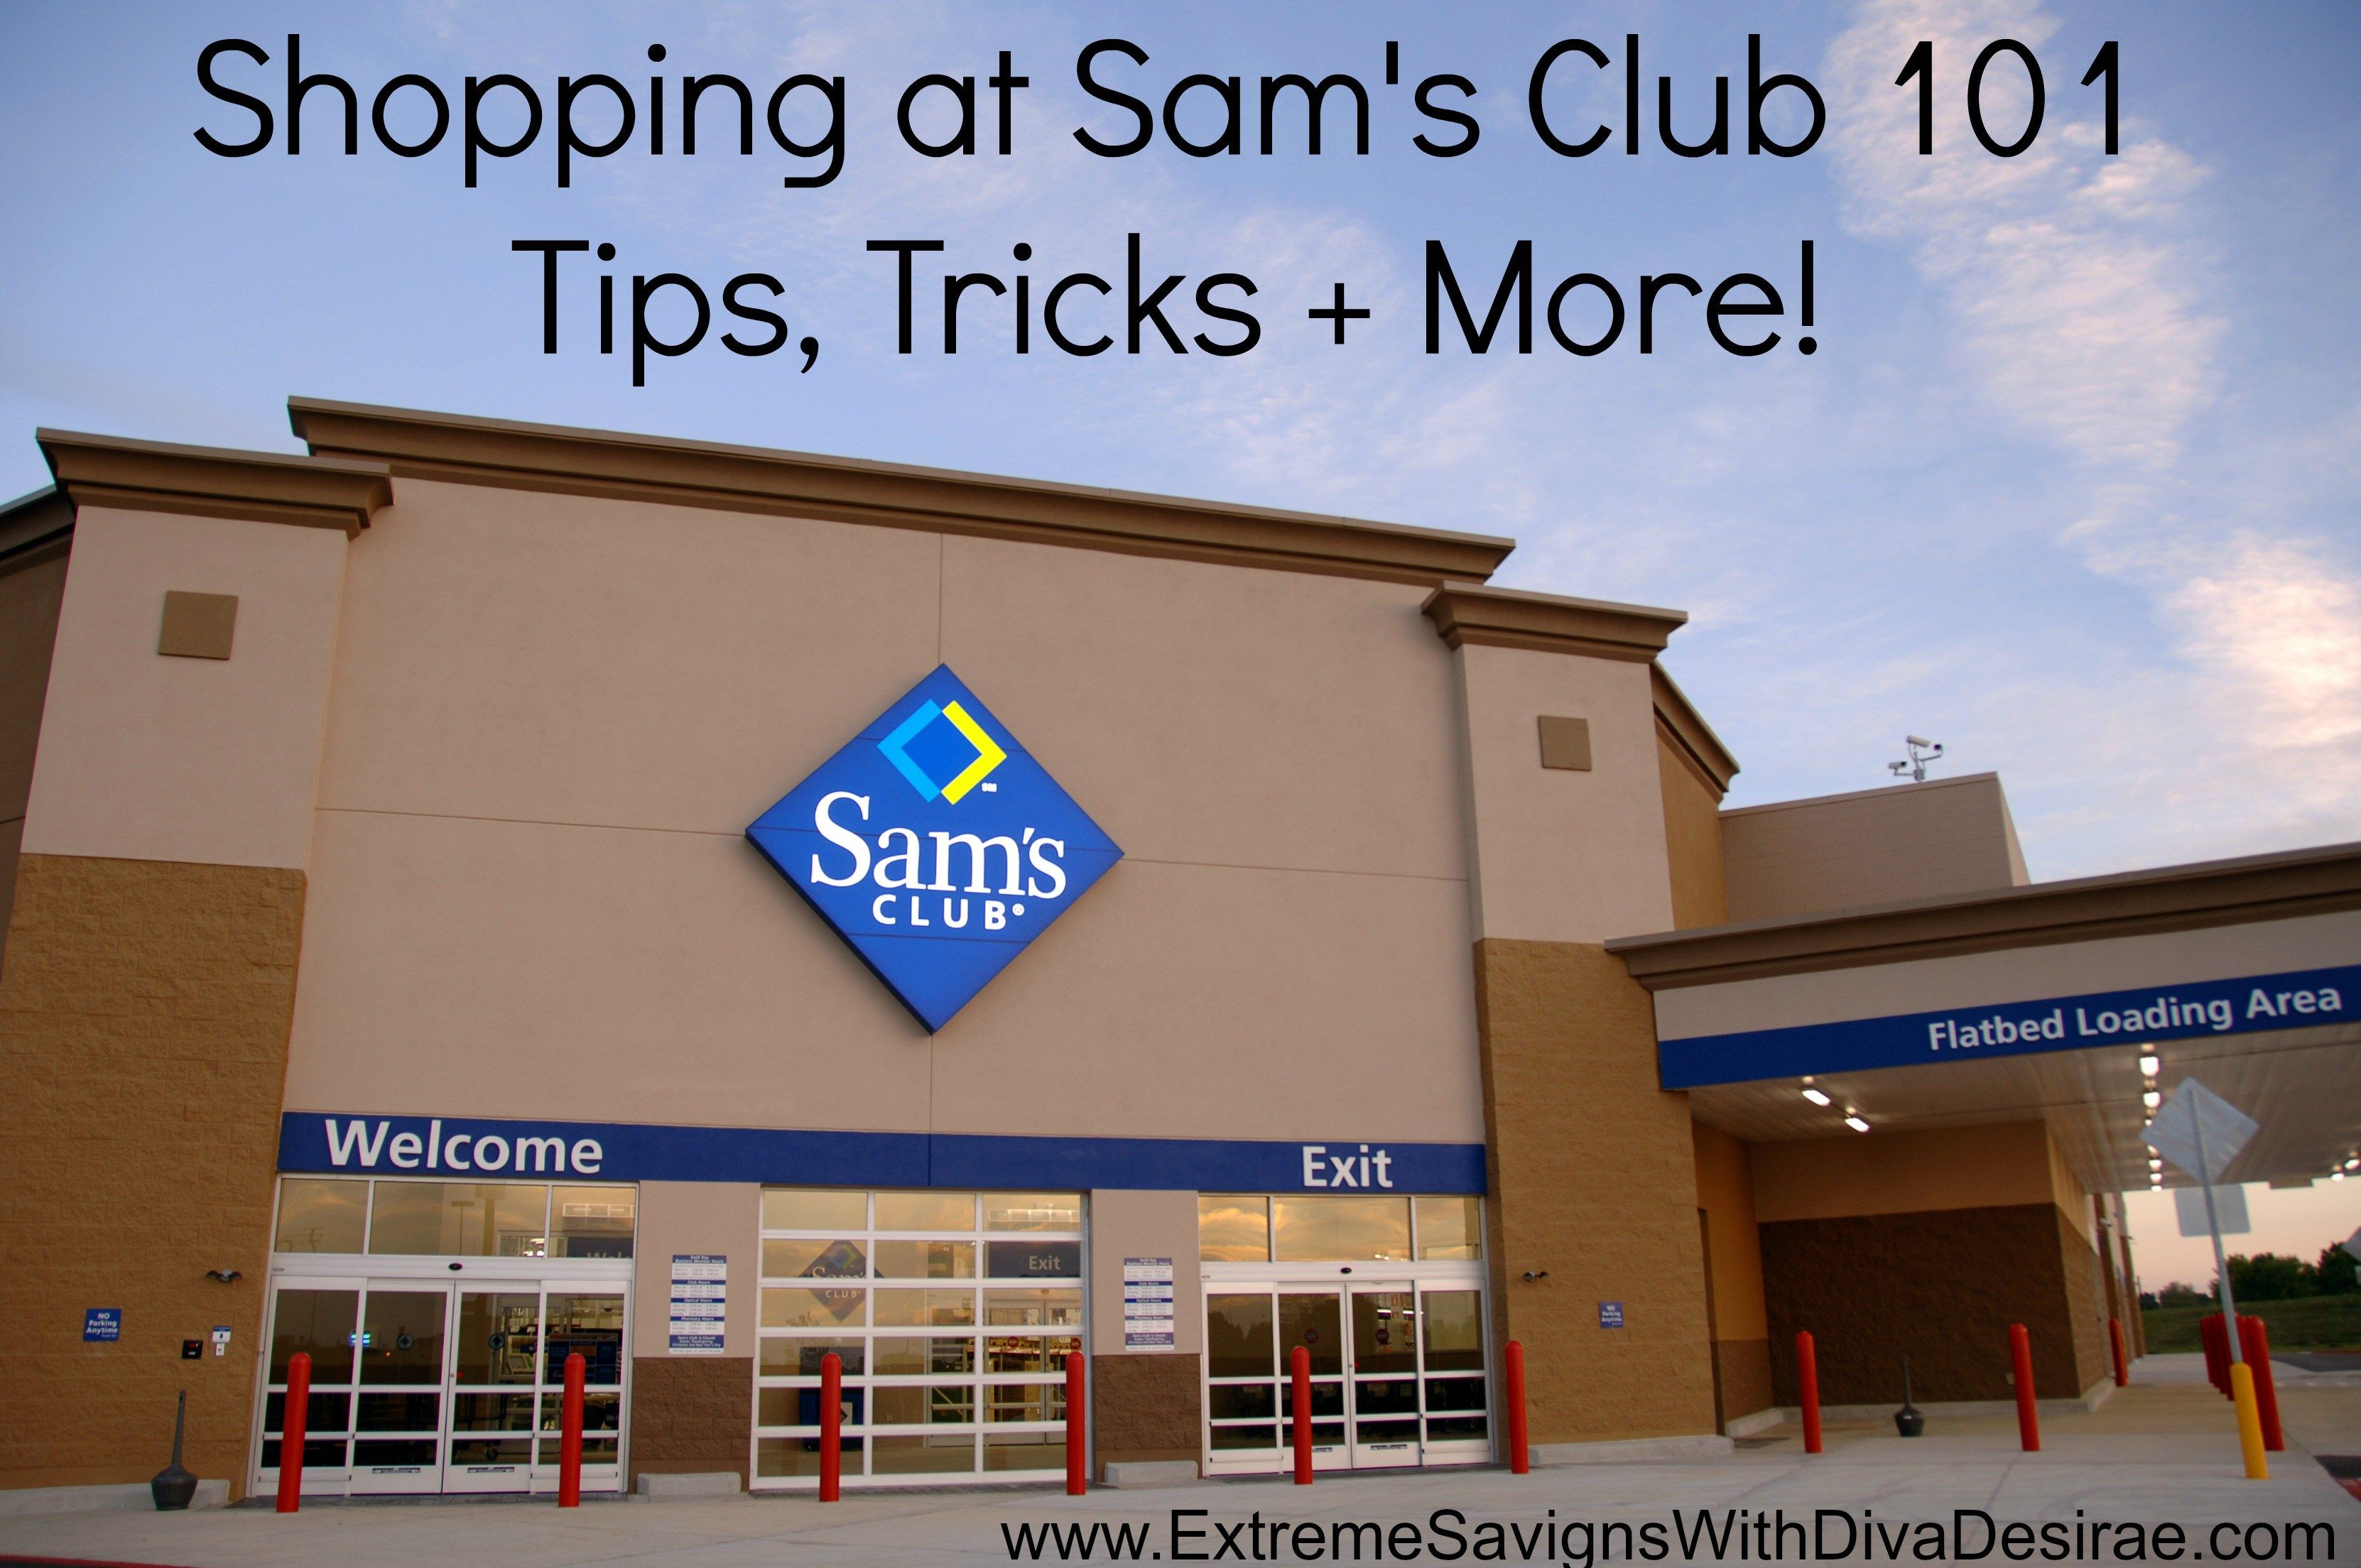 I am a huge Sam's Club shopper and I am constantly asked